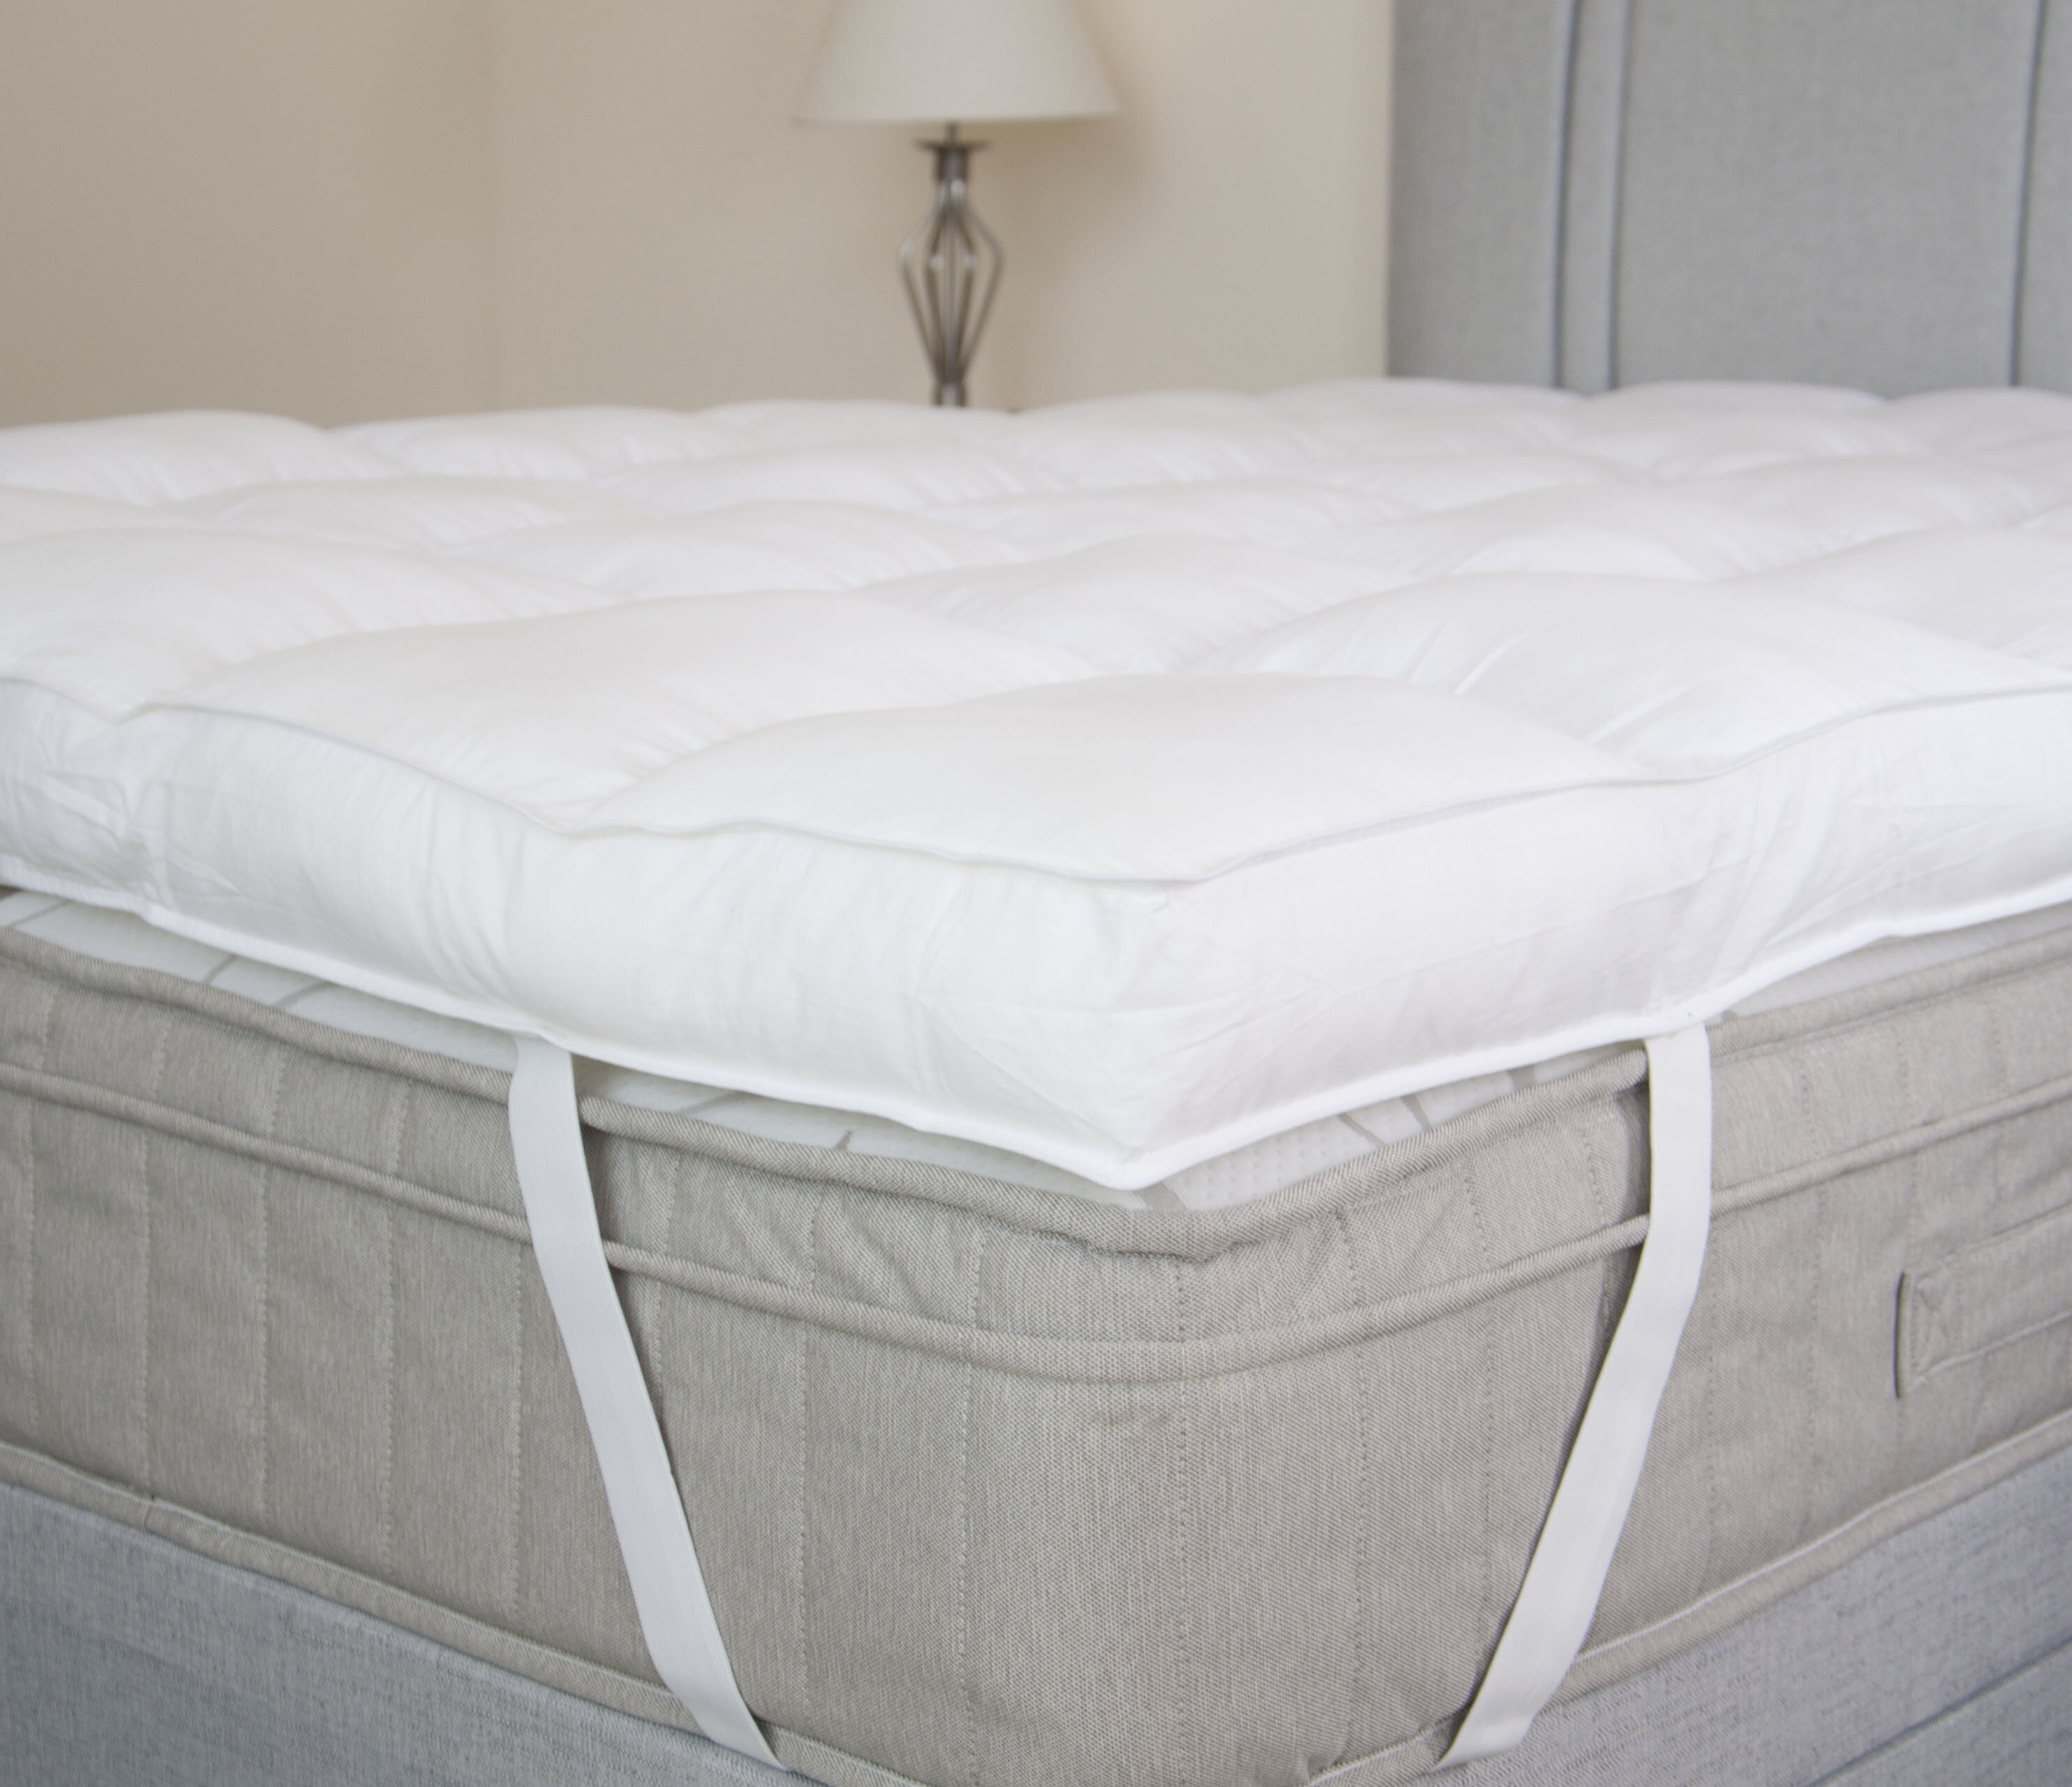 shipping bath product bedding gel fiber solutions and foam inch slumber mattress topper today overstock free memory